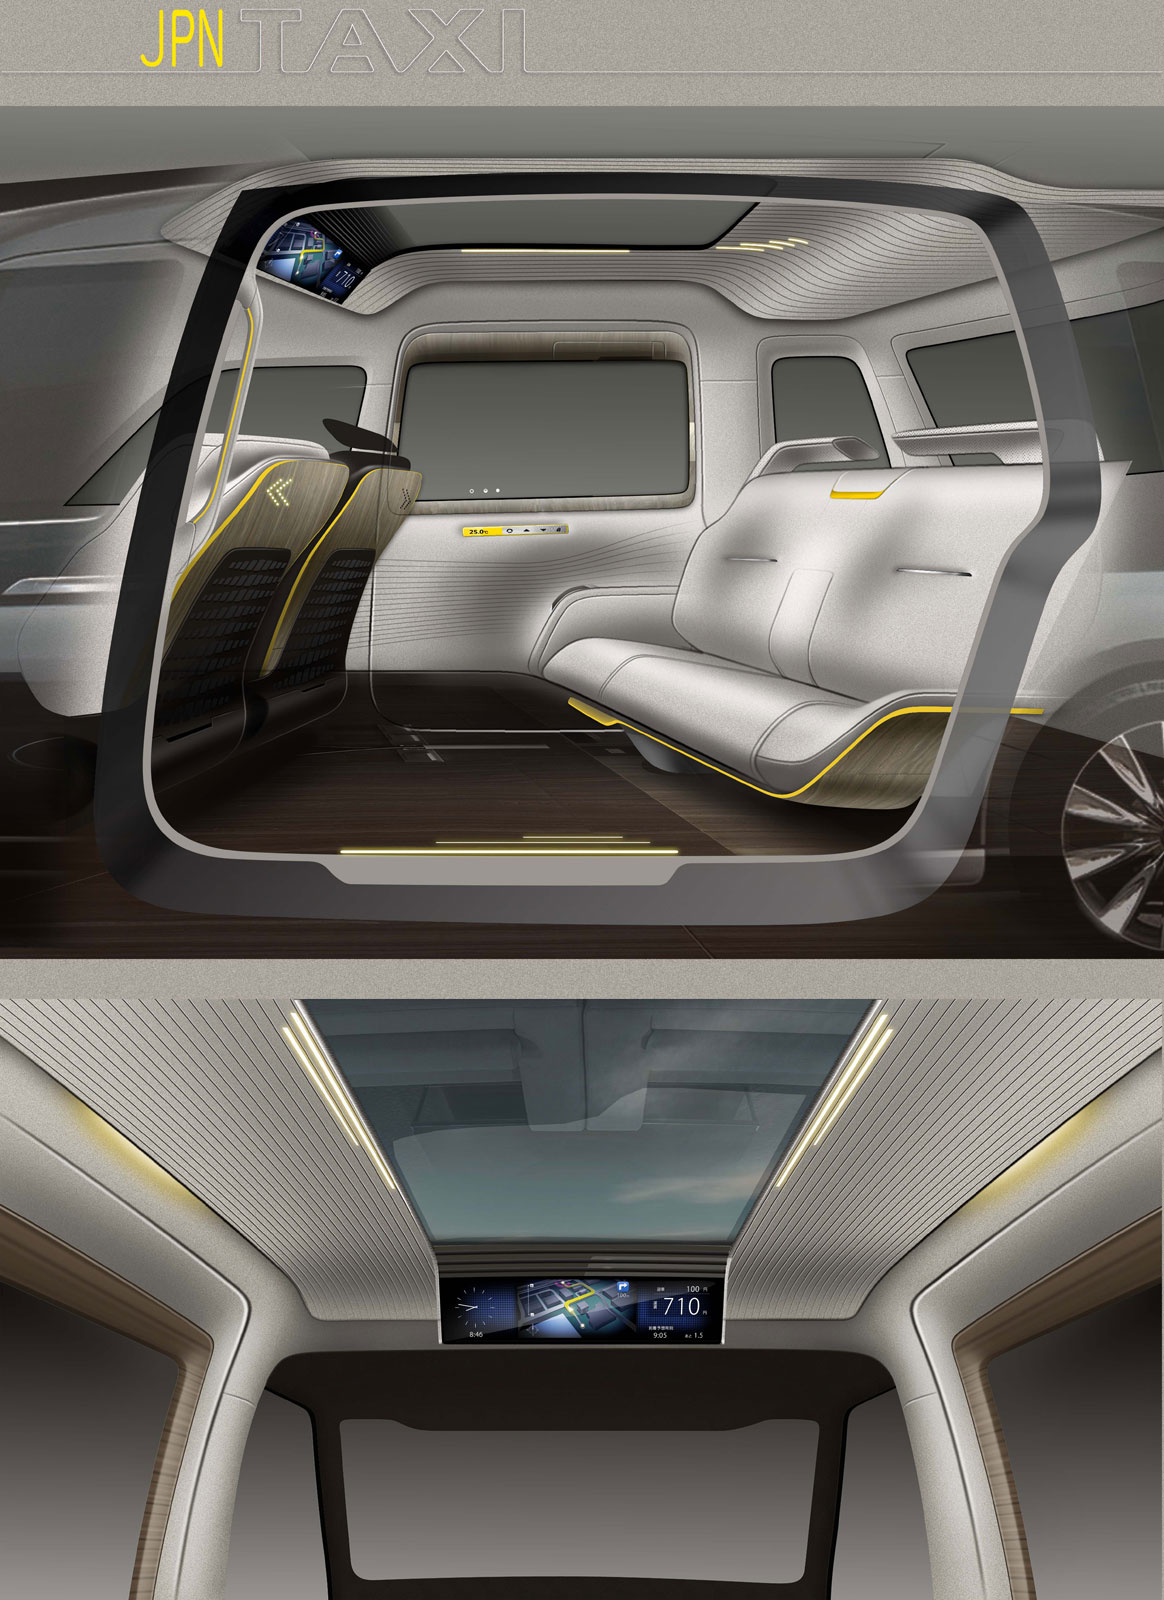 Toyota Jpn Taxi Concept Interior Design Sketches Car